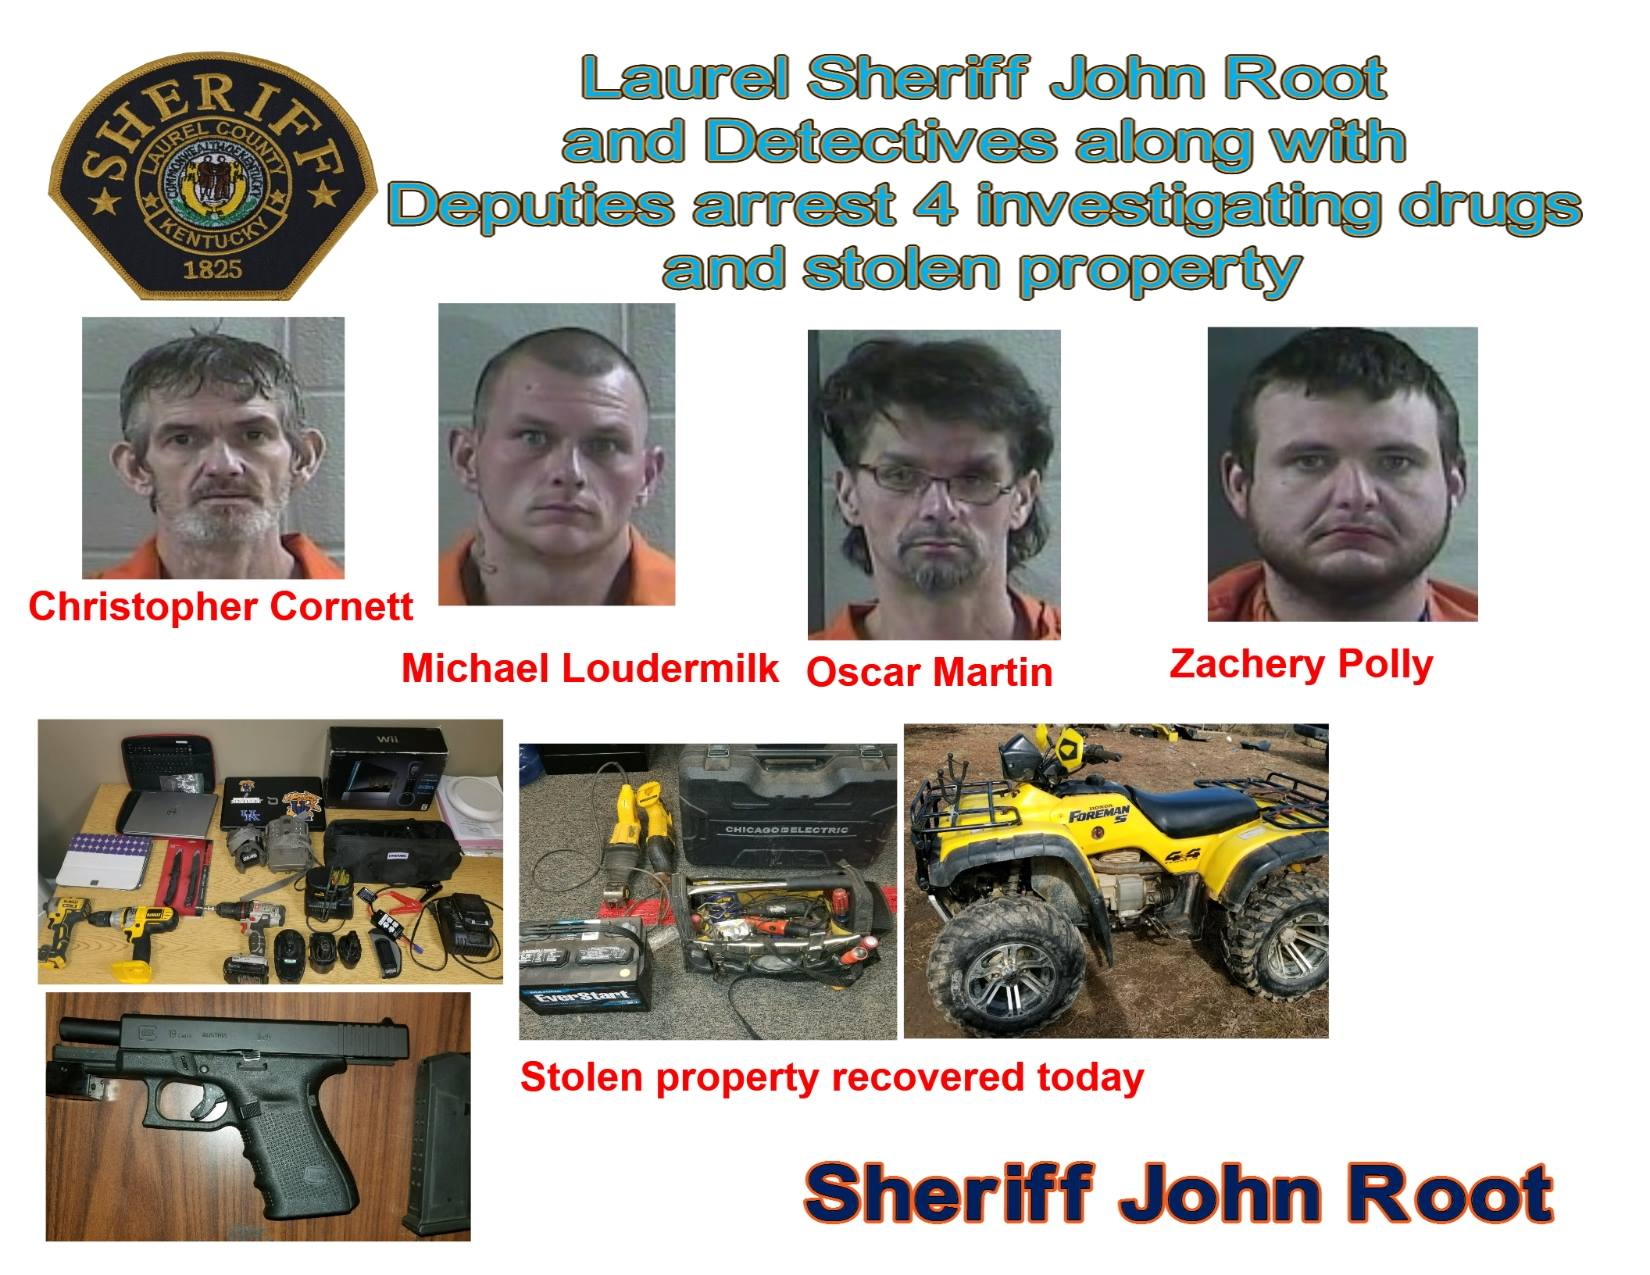 Four Arrested In Laurel County On Drug And Stolen Property Charges